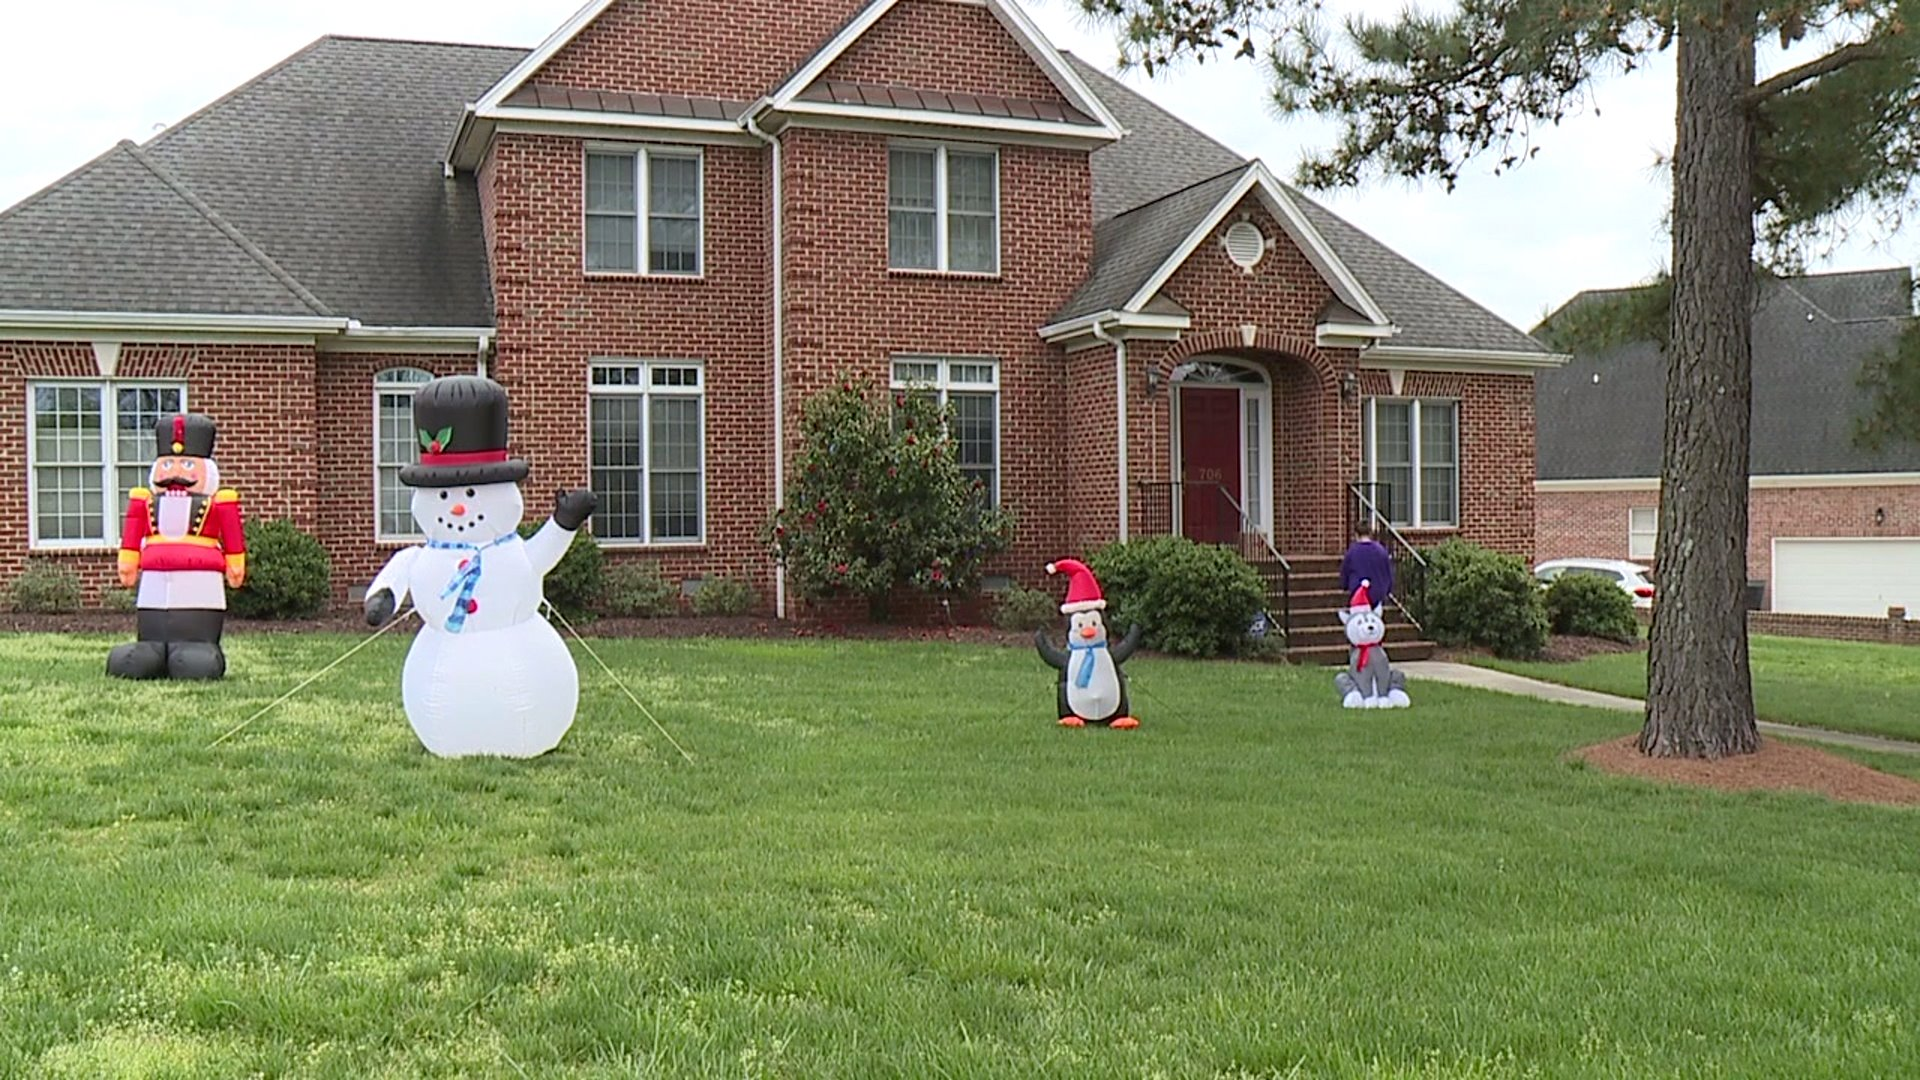 Burlington neighbors put up Christmas decorations to spread cheer amid coronavirus outbreak